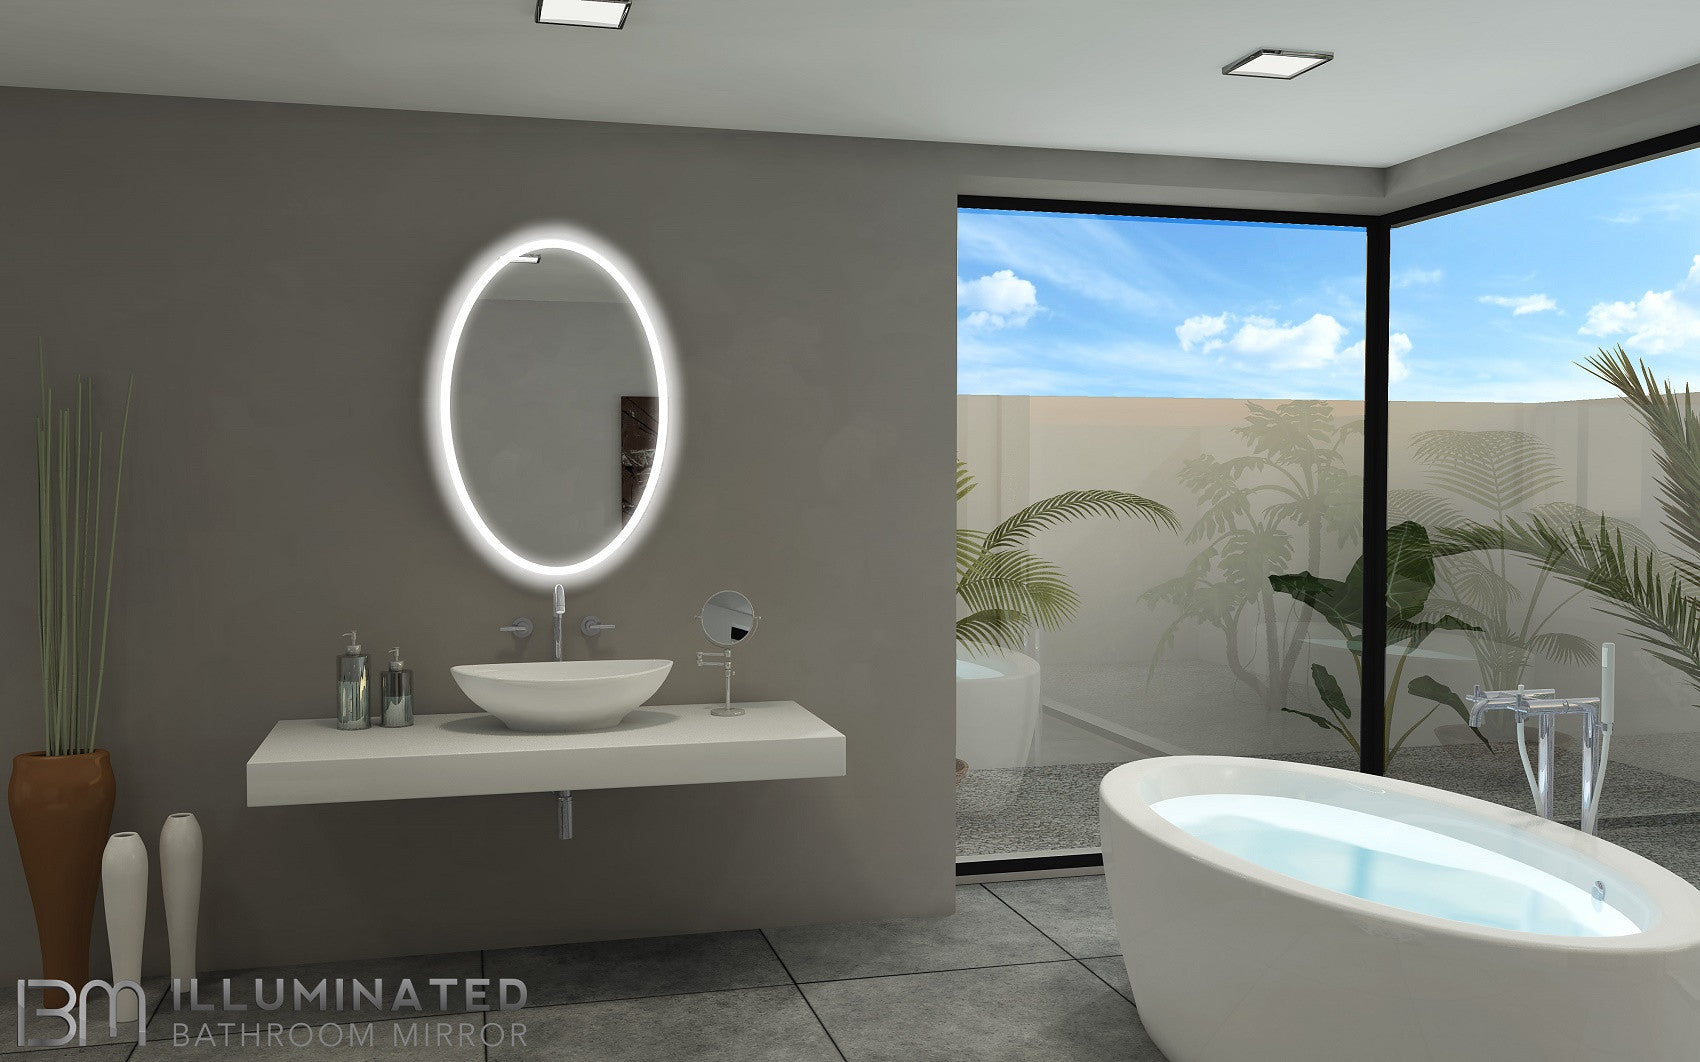 Backlit Bathroom Mirror Oval 24 X 36 In Ib Mirror